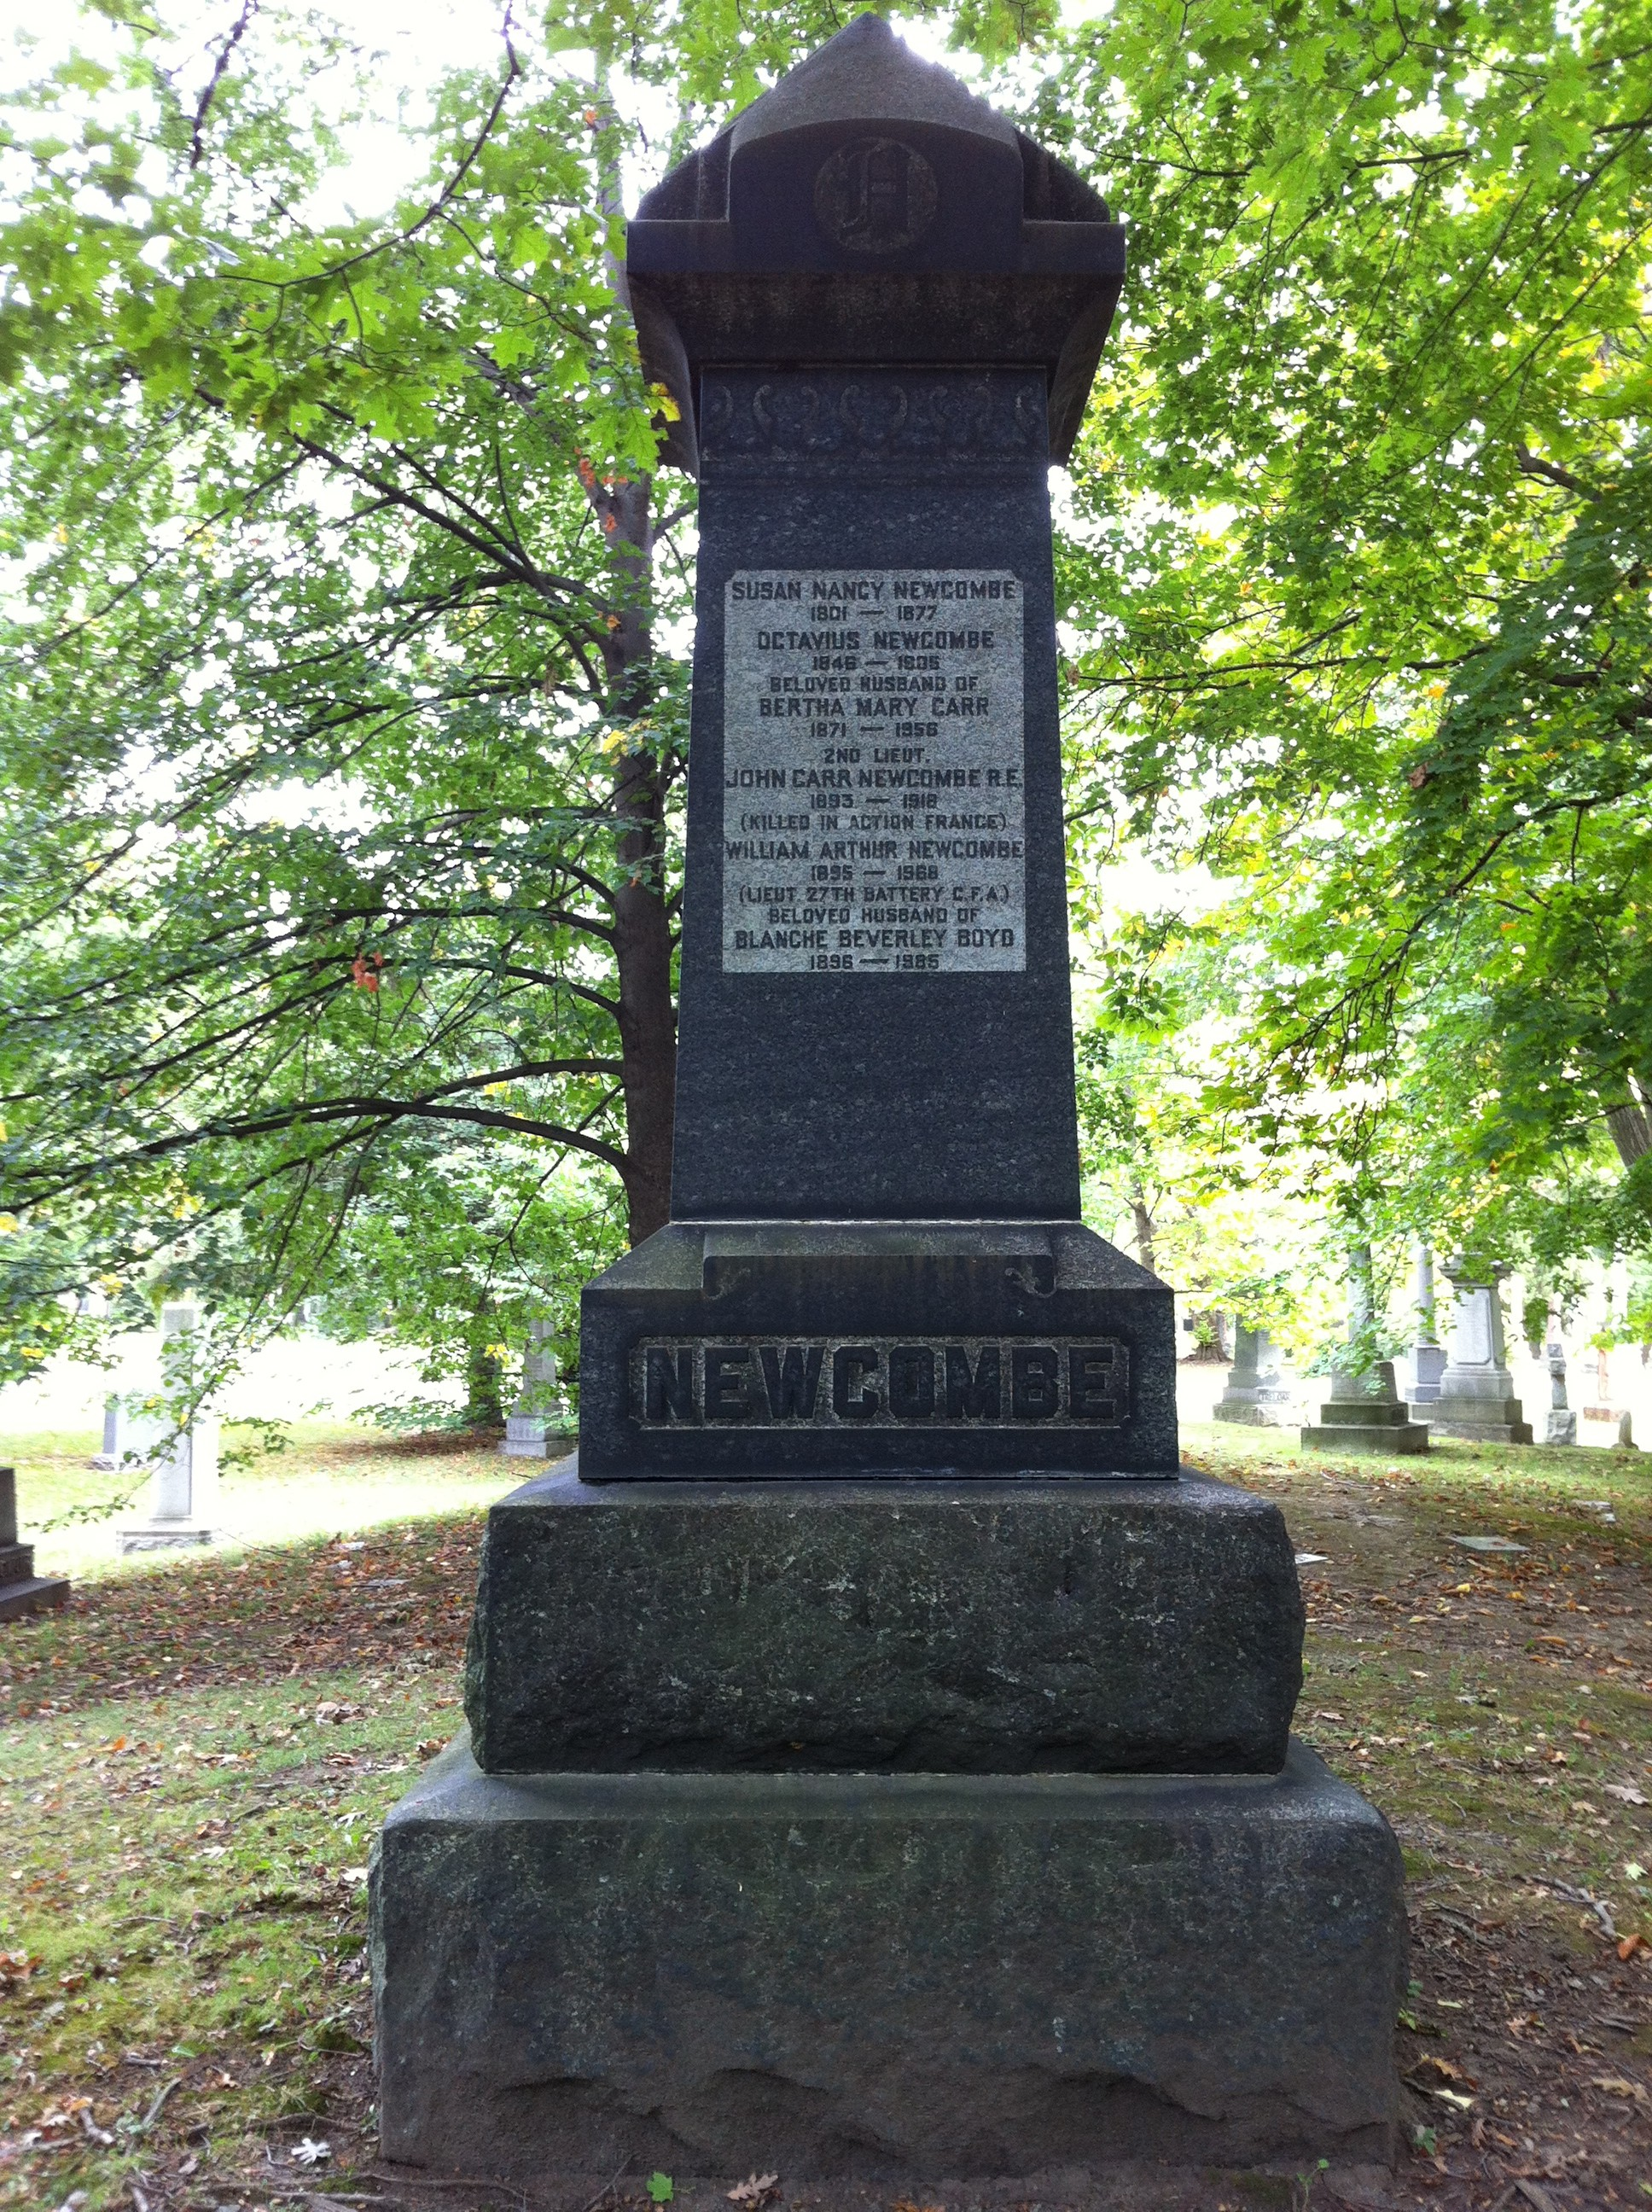 Tombstone at Mount Pleasant Cemetery - Susan Nankivell (1801-1877)